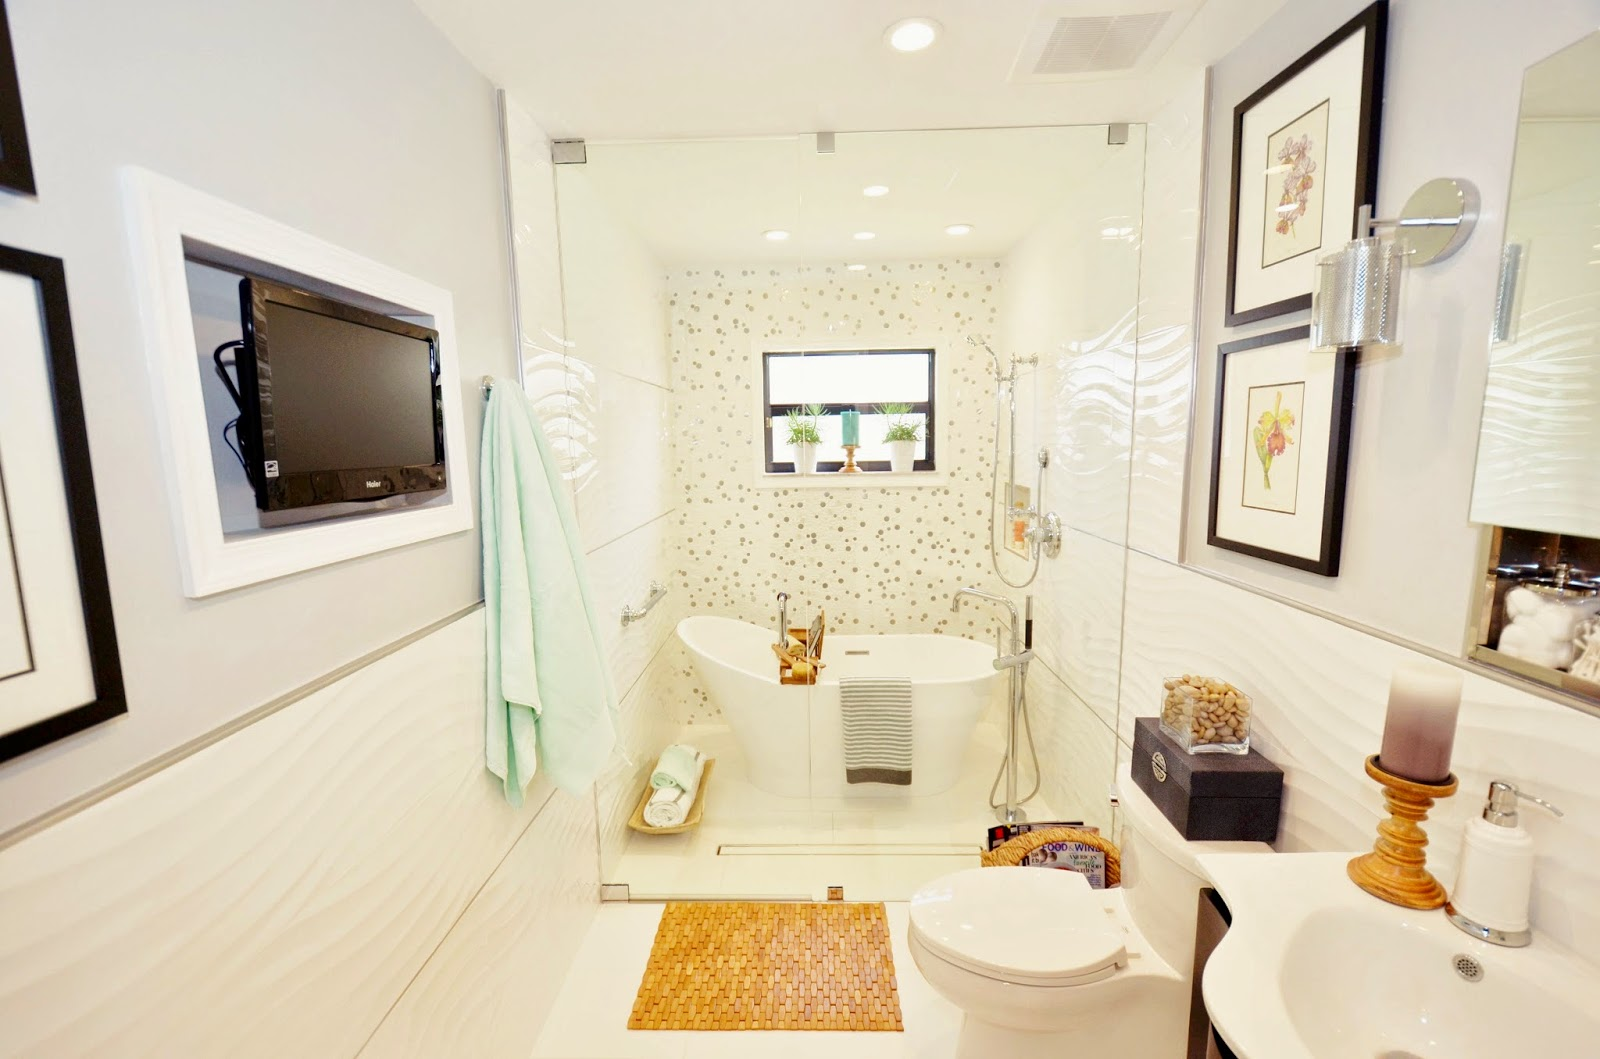 Bath toy storage that transforms to guest luxury bathroom on - This Little Gem Of A Guest Bathroom Belongs To My Dearest Clients Pat And Oscar B Clients Whose Home We Have Spent Years Renovating Room By Room